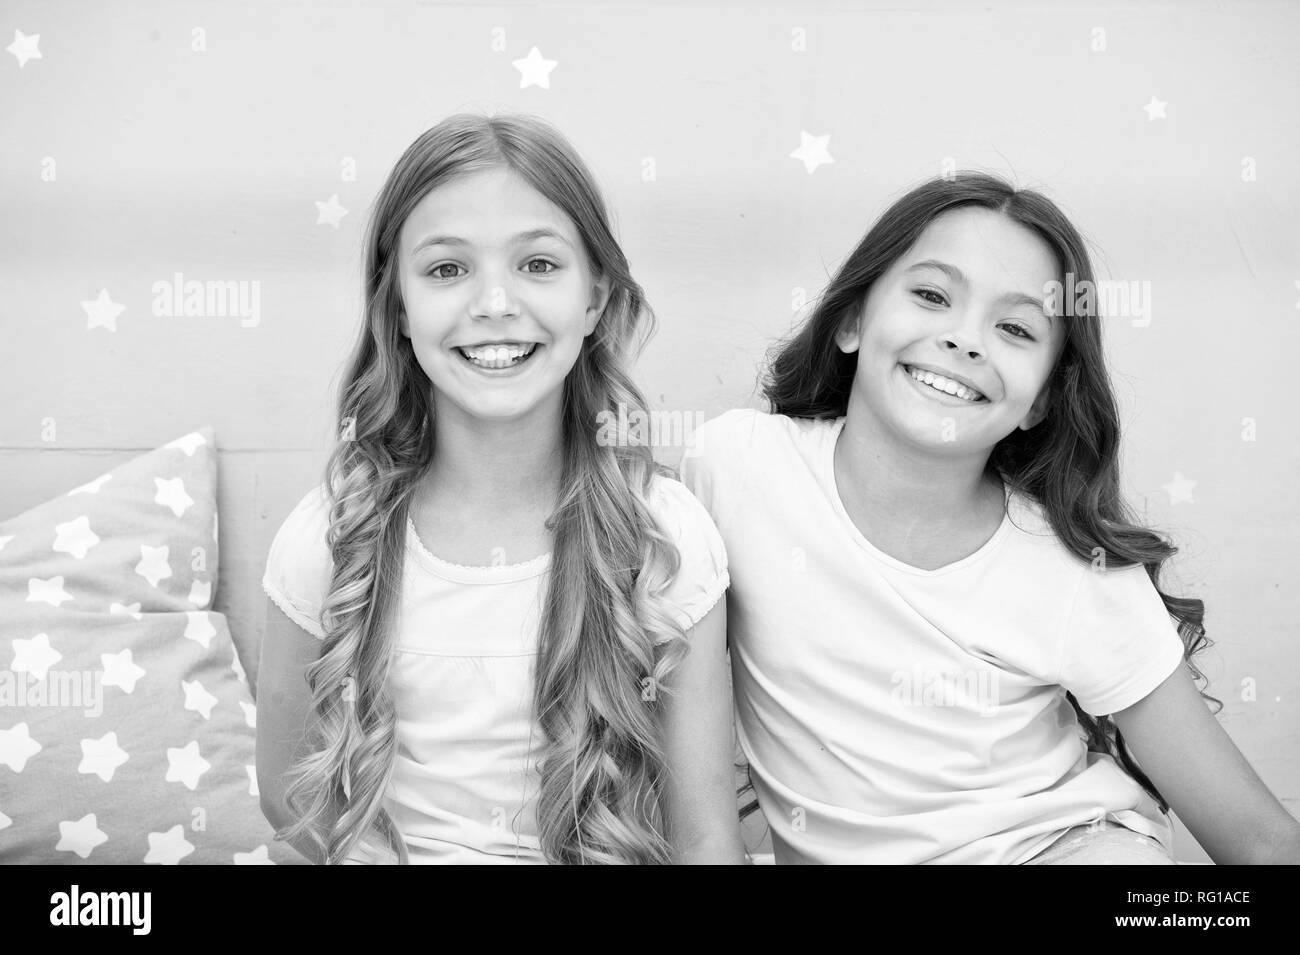 Girls children with long curly hair. Pajamas party concept. Girls just want to have fun. Girlish secrets honest and sincere. Friends kids have nice time pleasant leisure. Best friends forever. - Stock Image